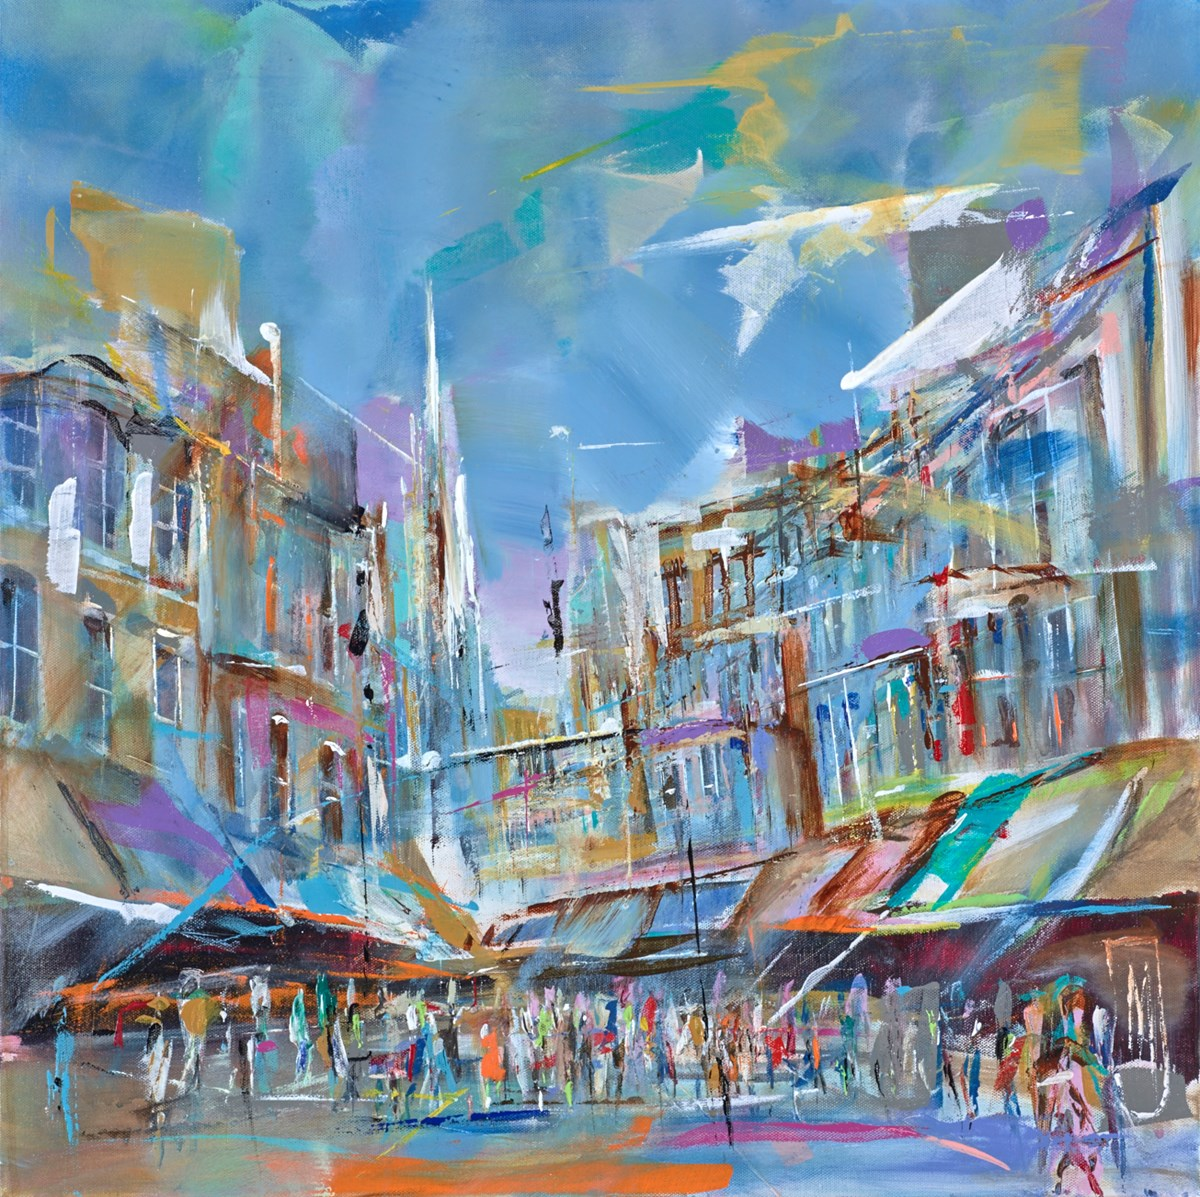 Shoppers and Walkers by marijus jusionis -  sized 24x24 inches. Available from Whitewall Galleries